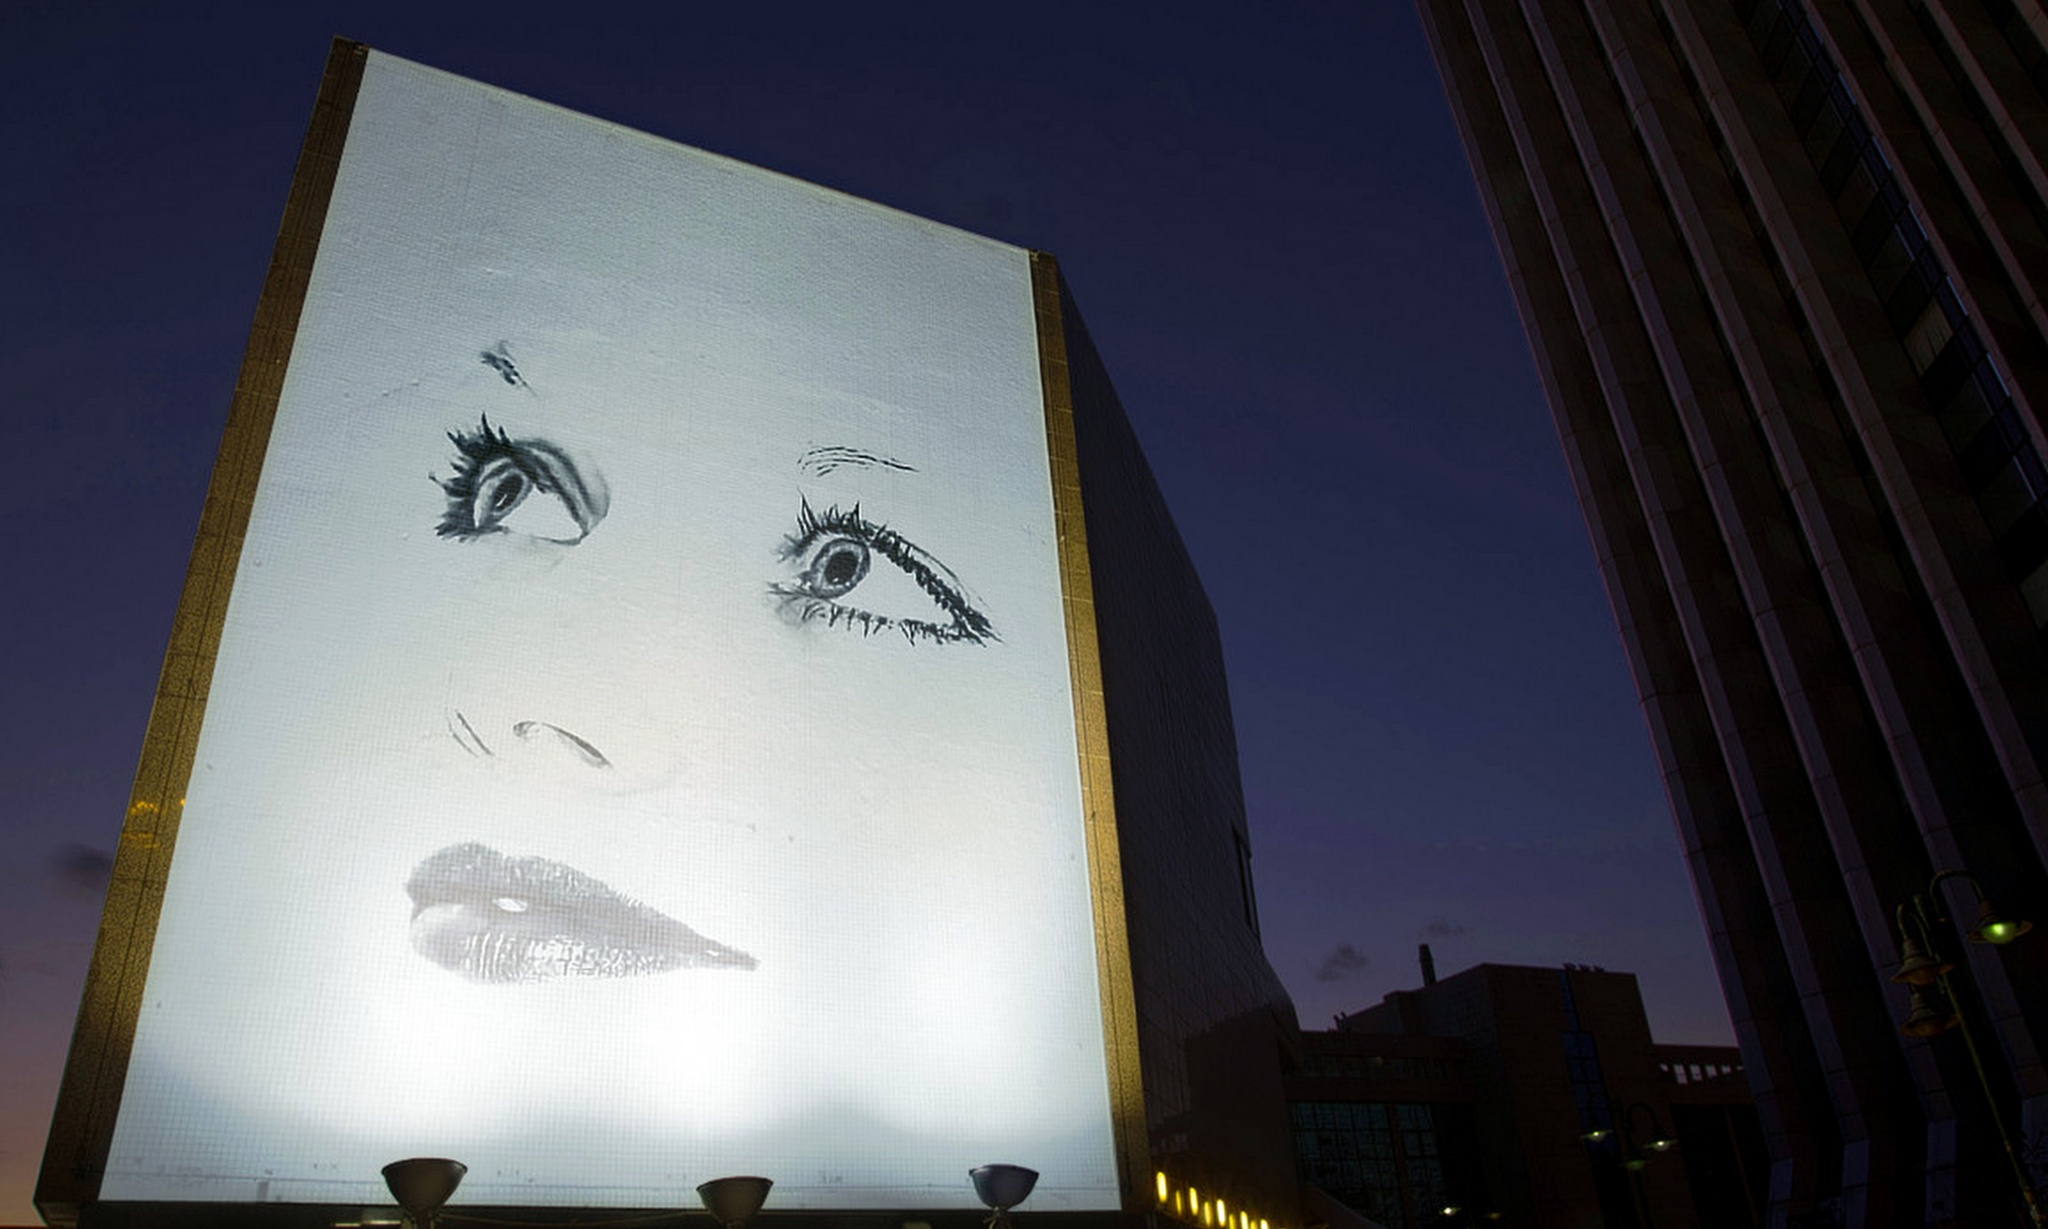 Evening billboard by ilseBodewes